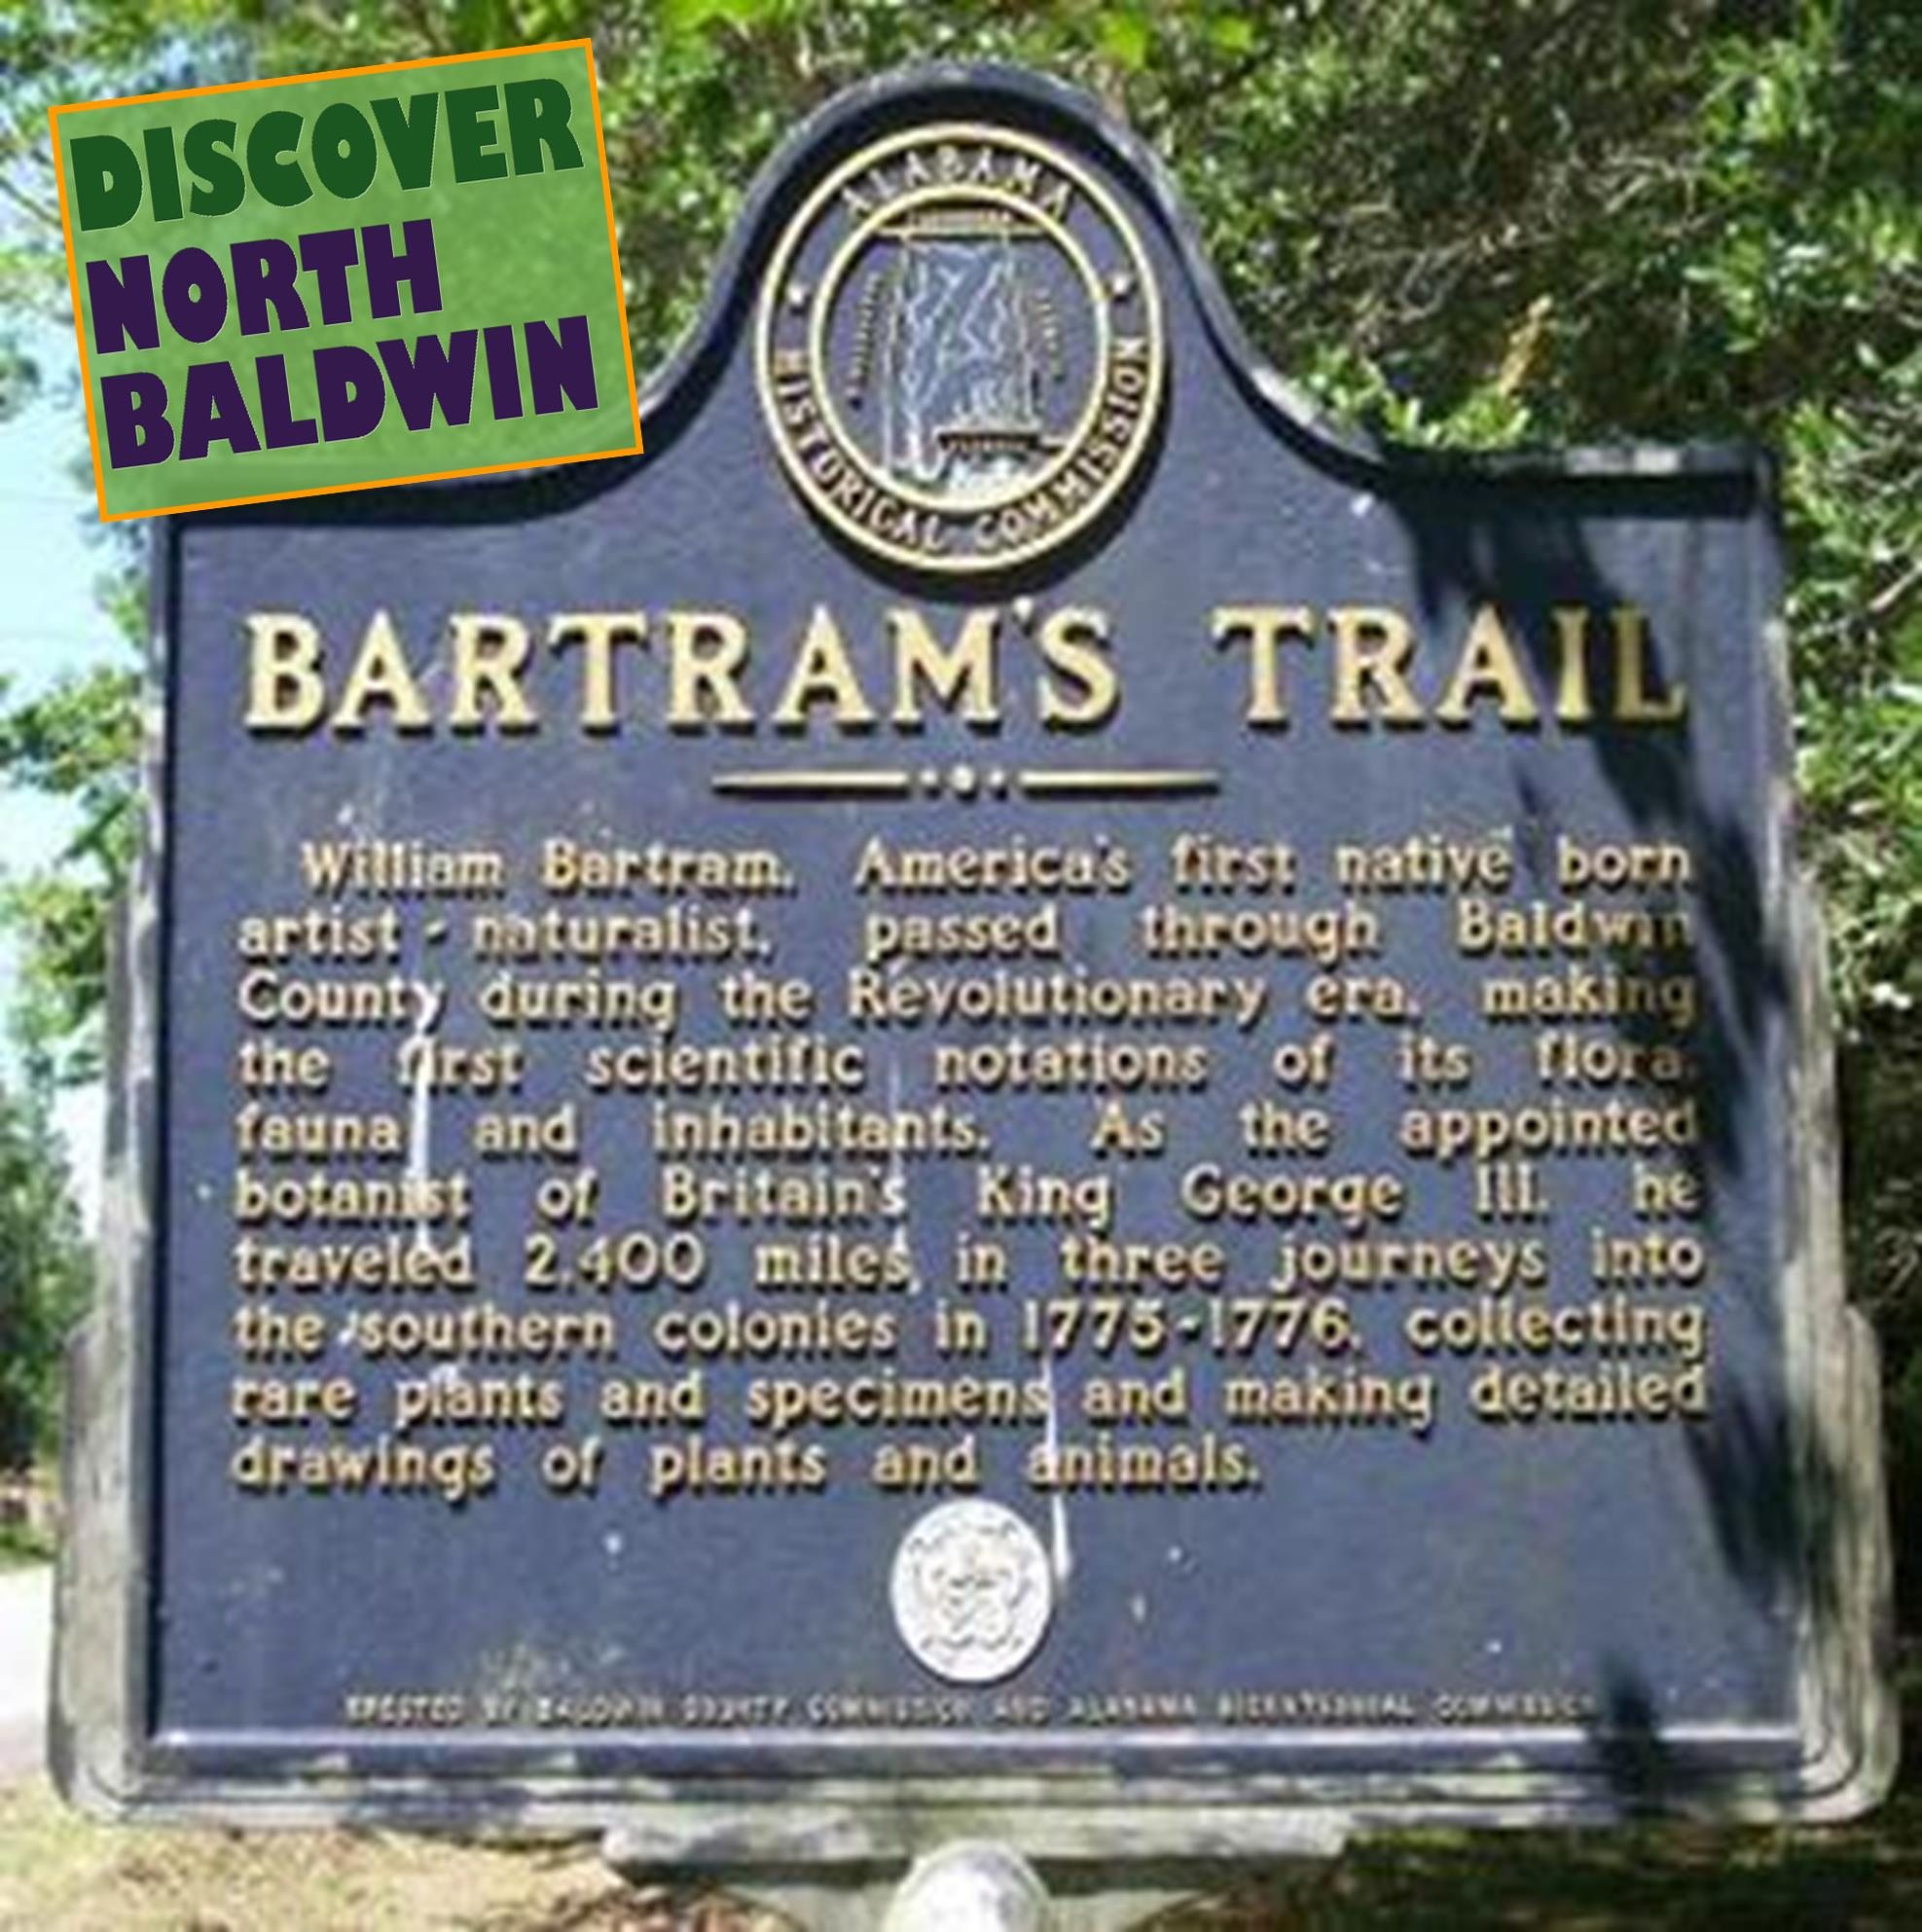 Bartram's Trail